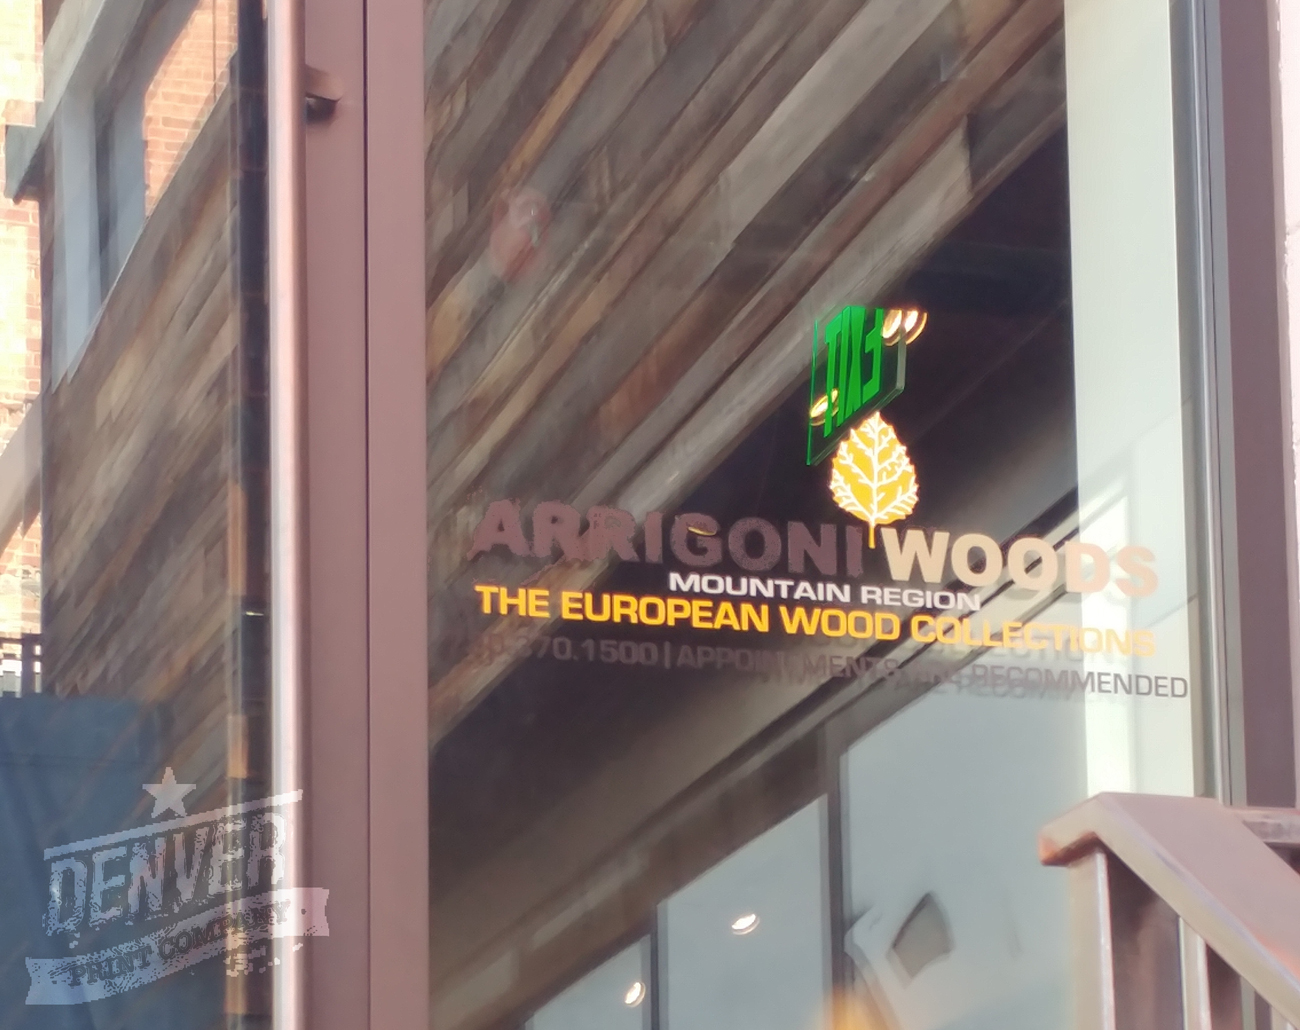 arrigoni woods window graphic